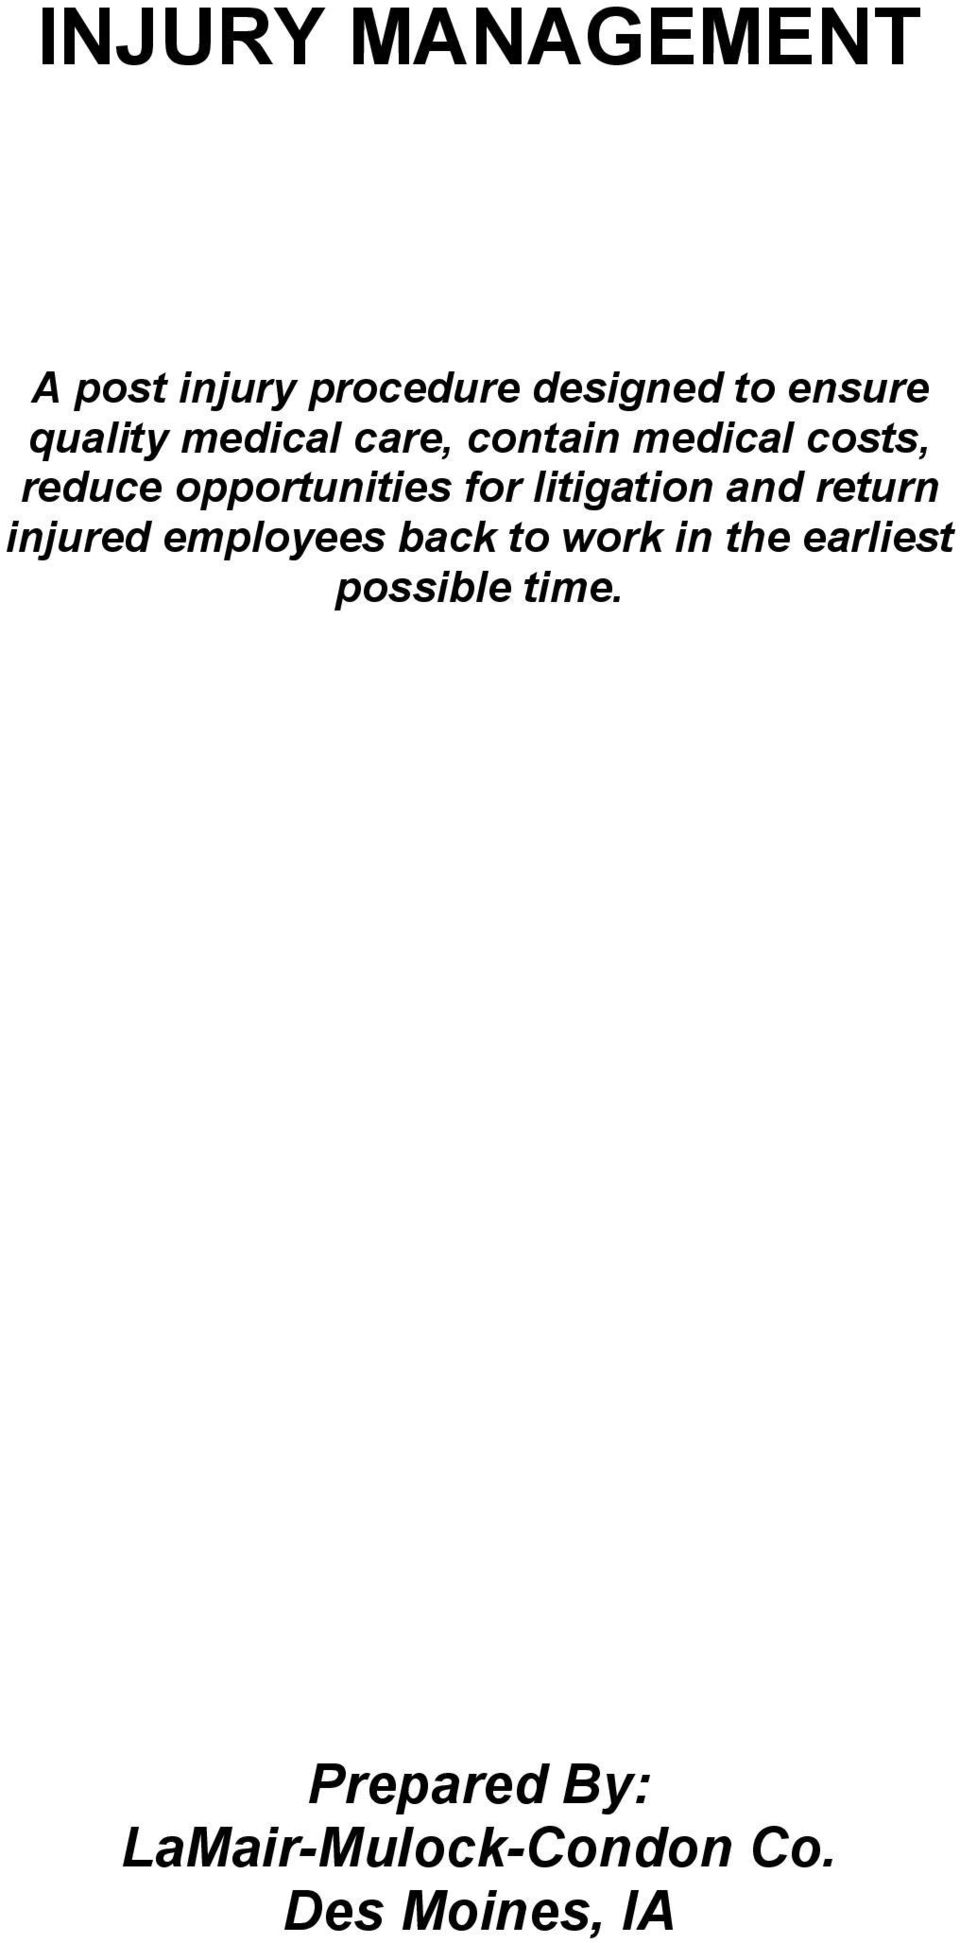 for litigation and return injured employees back to work in the